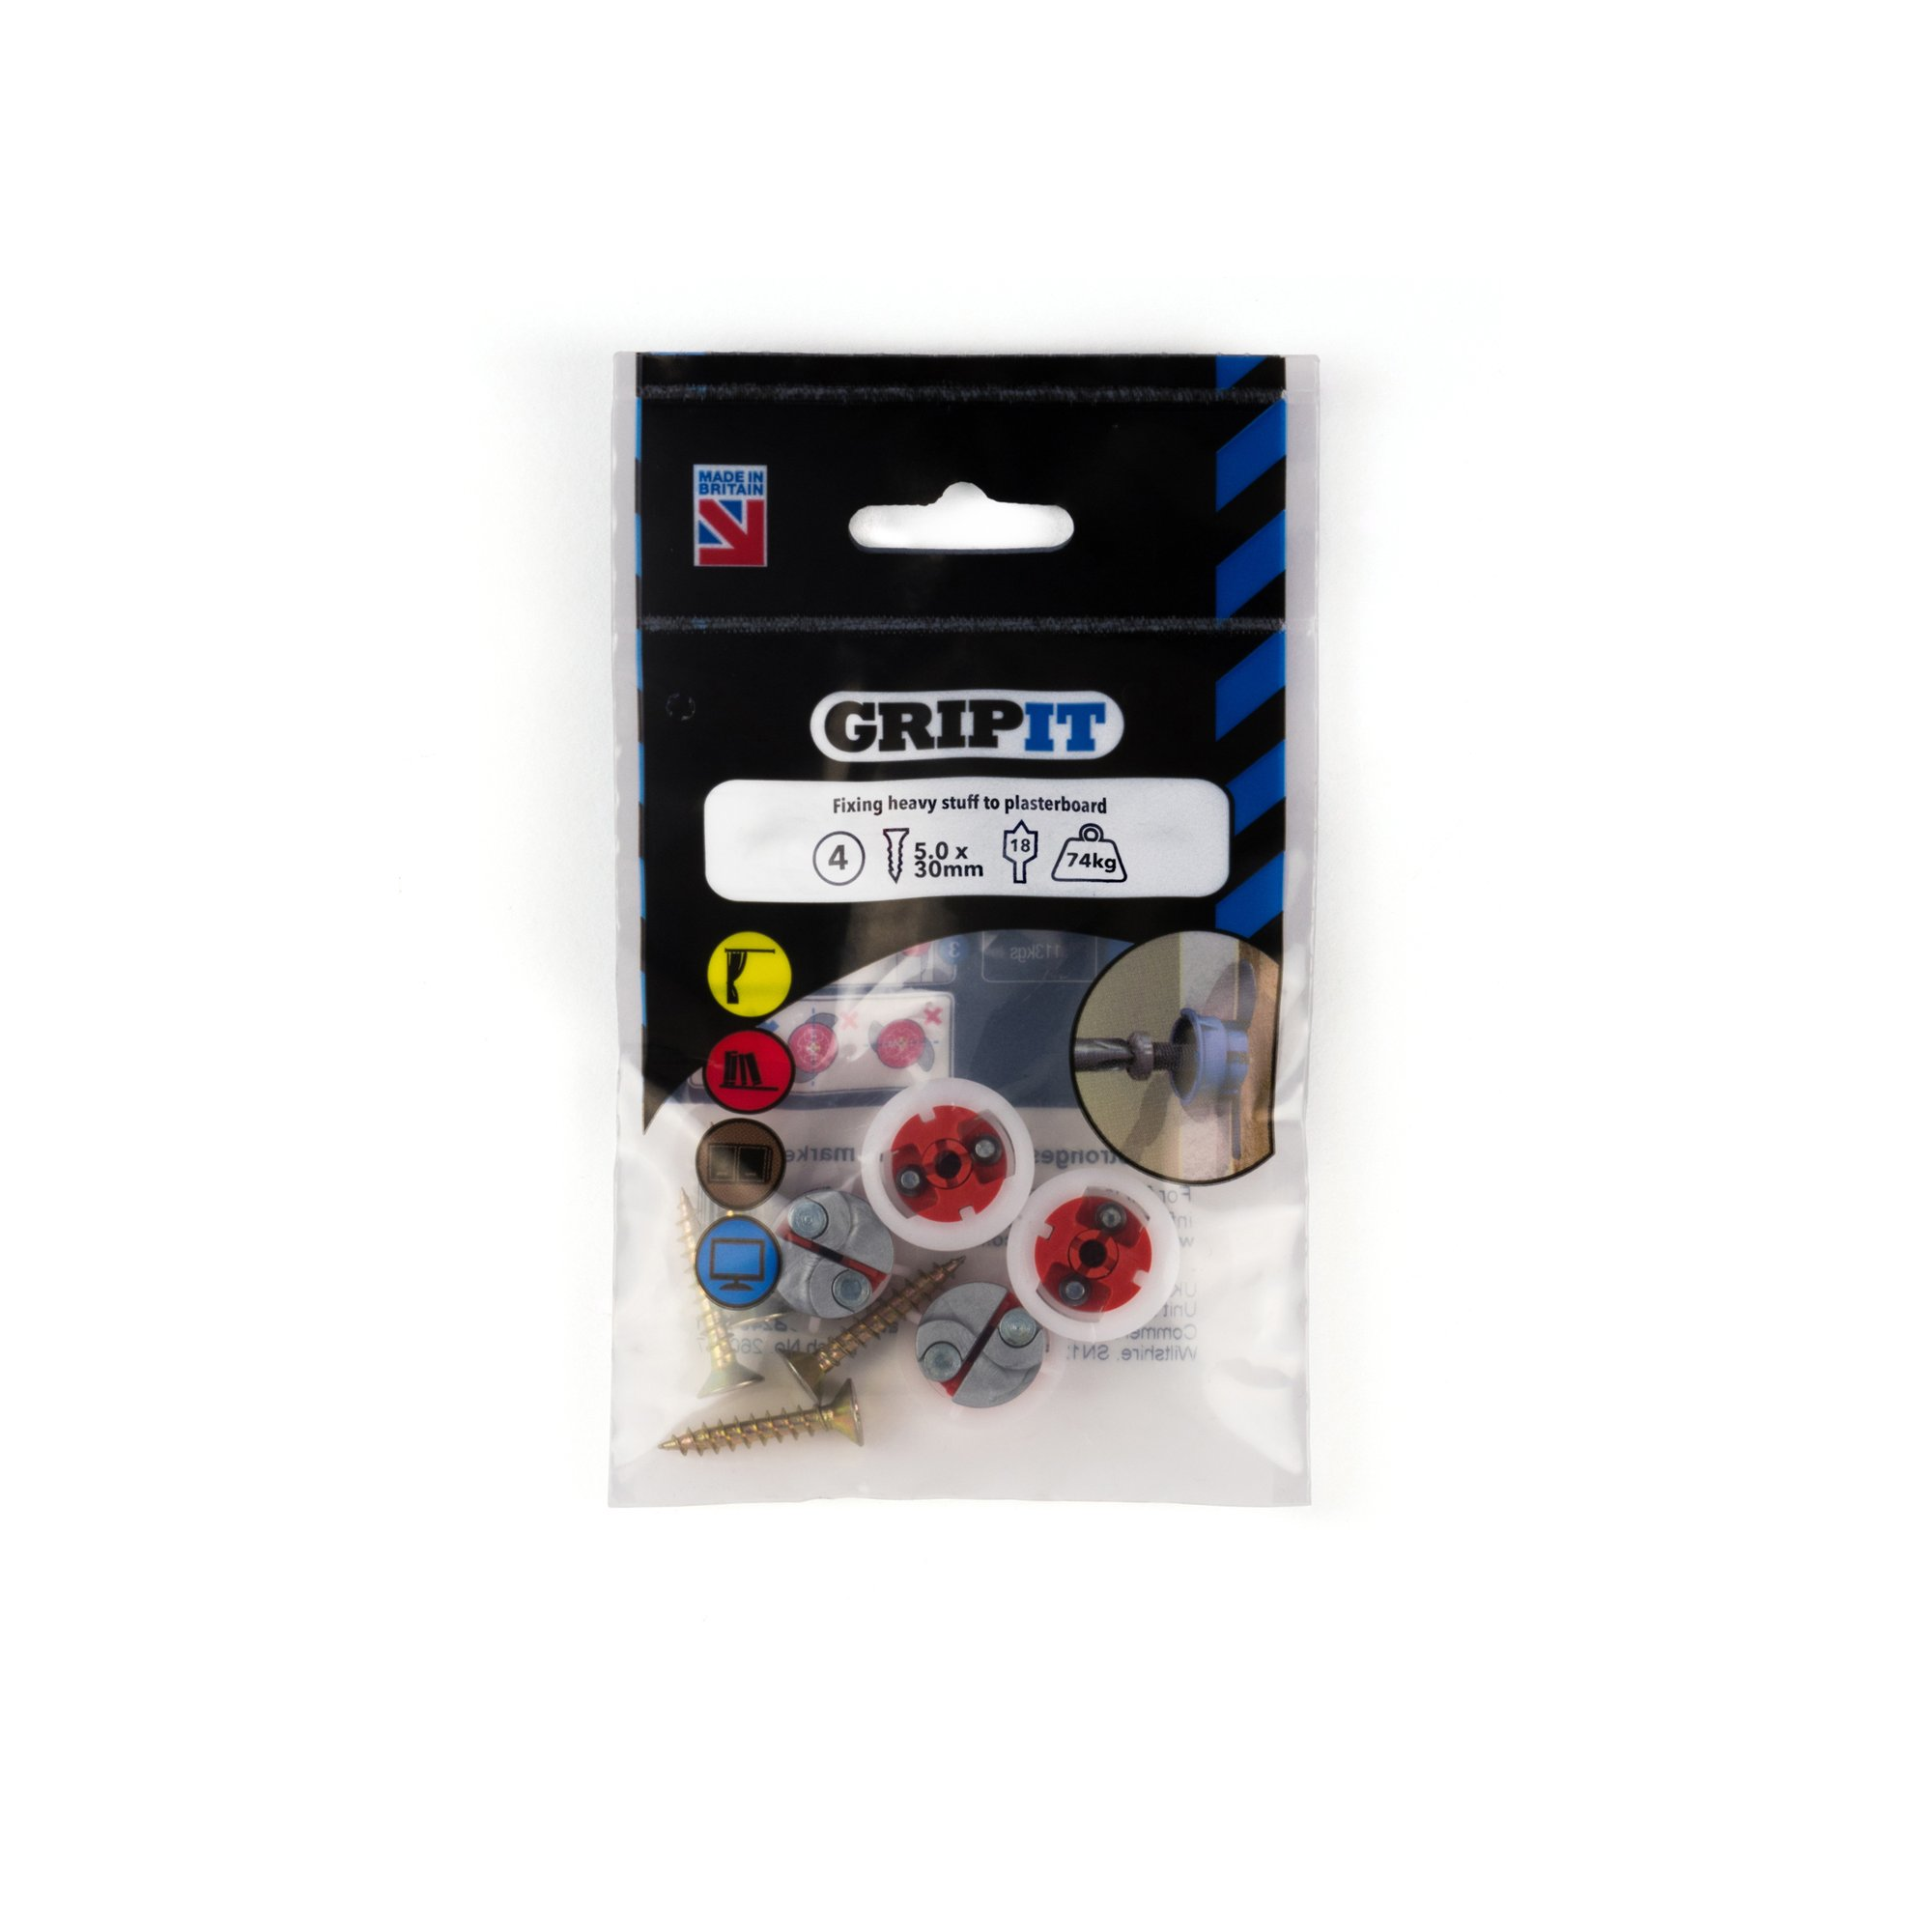 GRIPIT FIXINGS - RED 18MM FIXING PACK - 182-254 - PK4